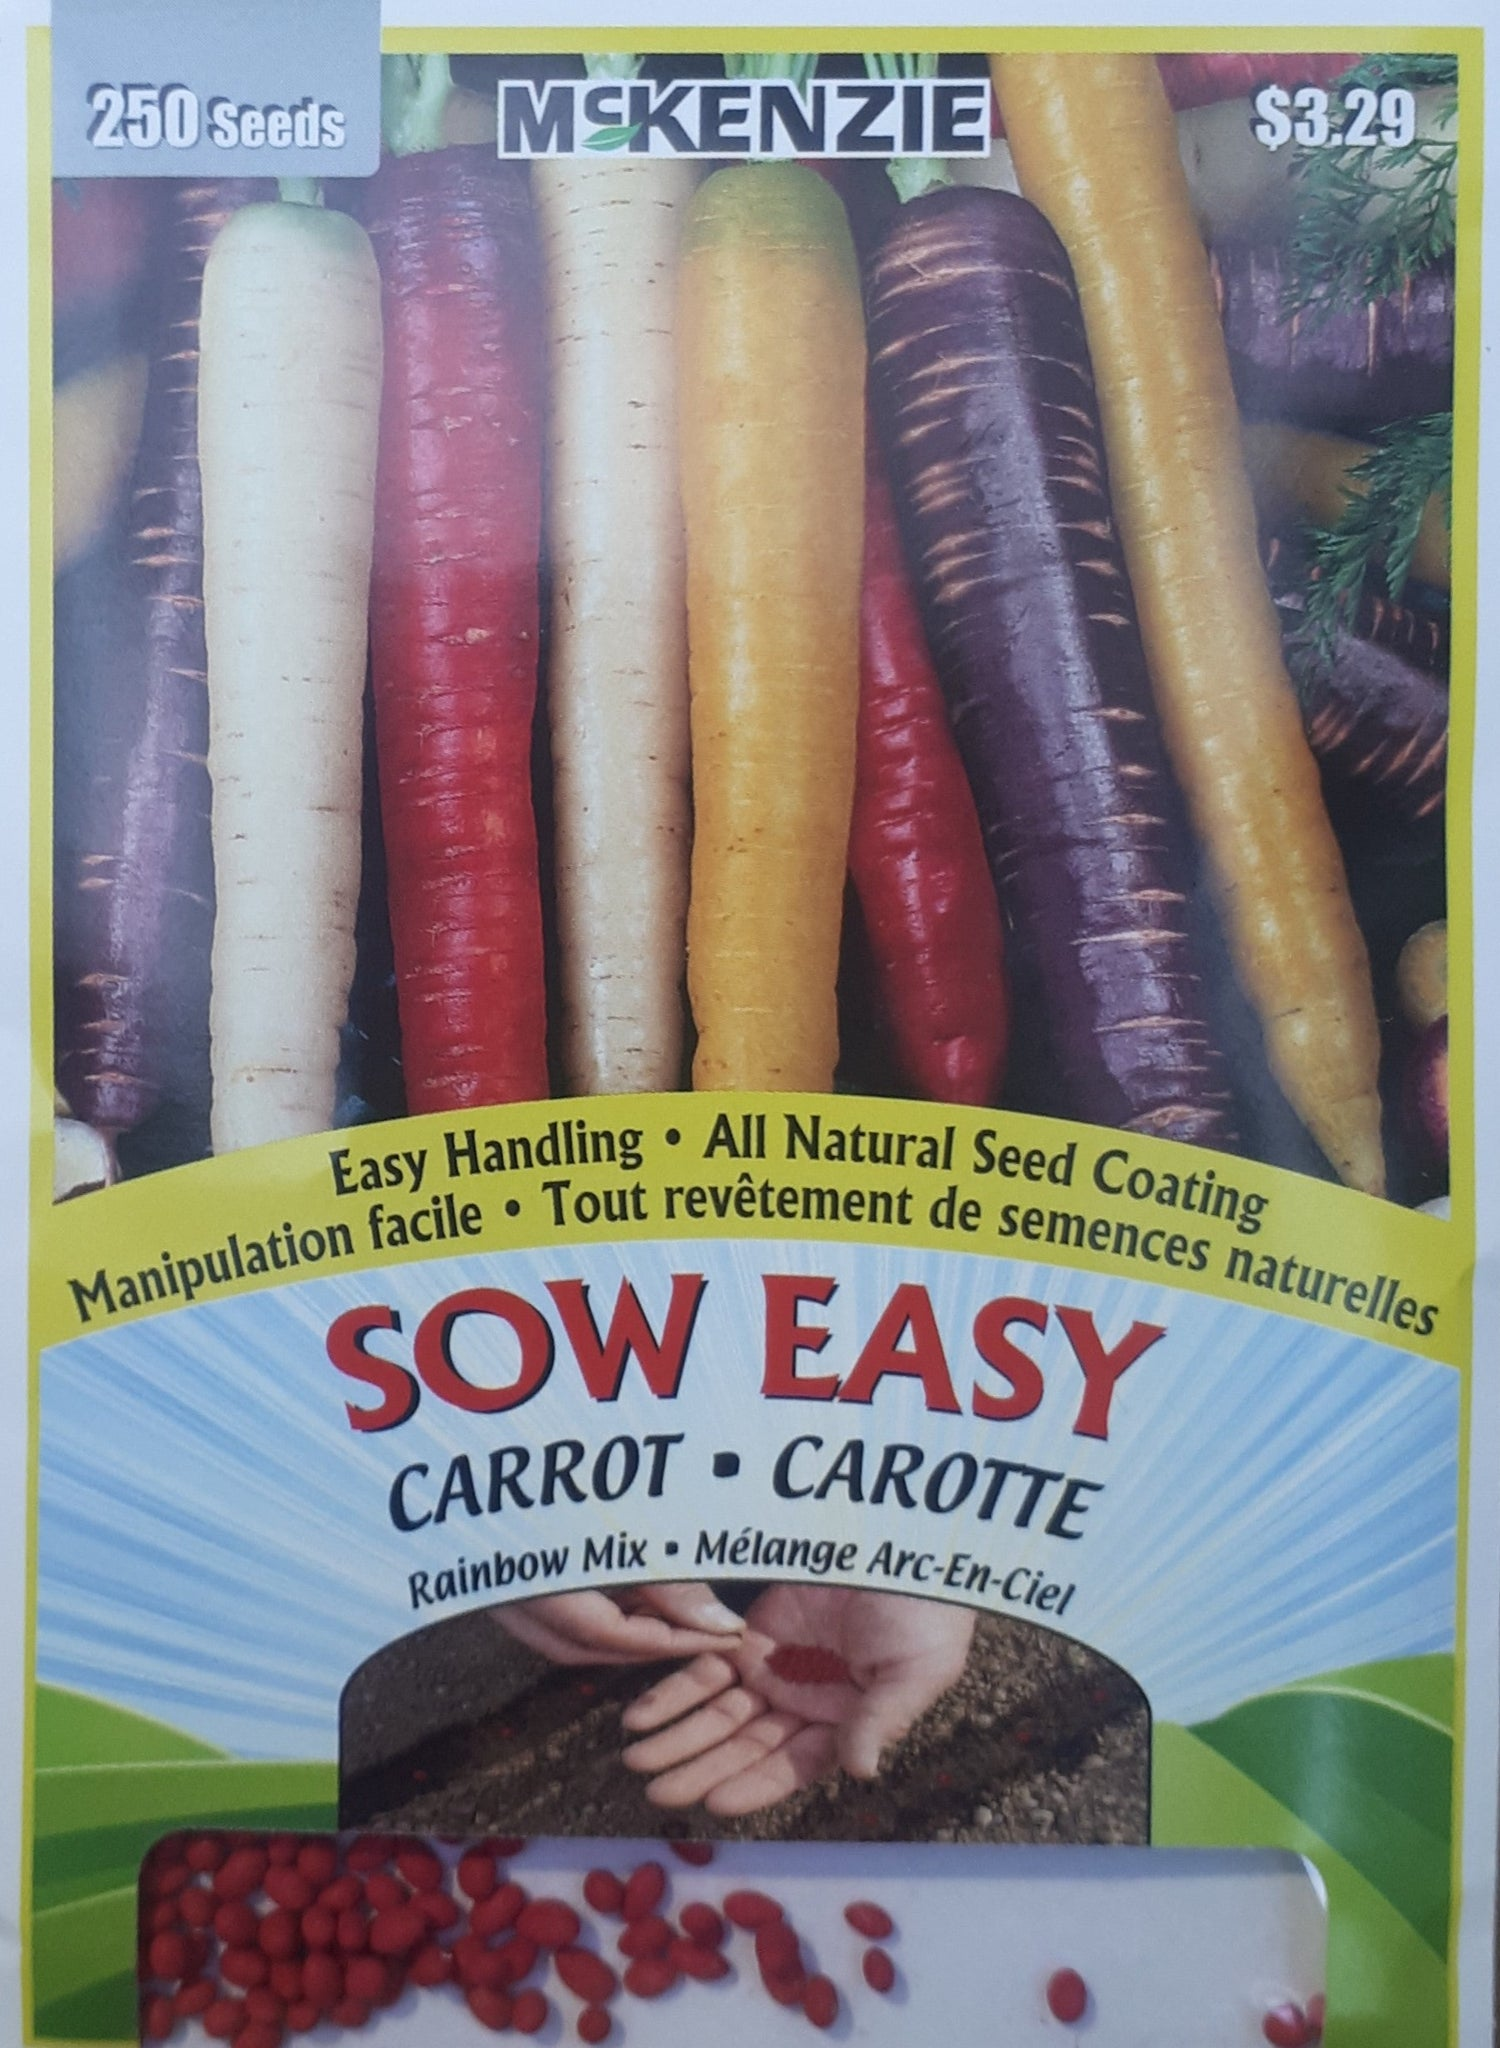 McKenzie Sow Easy Seeds - Carrot Rainbow Mix